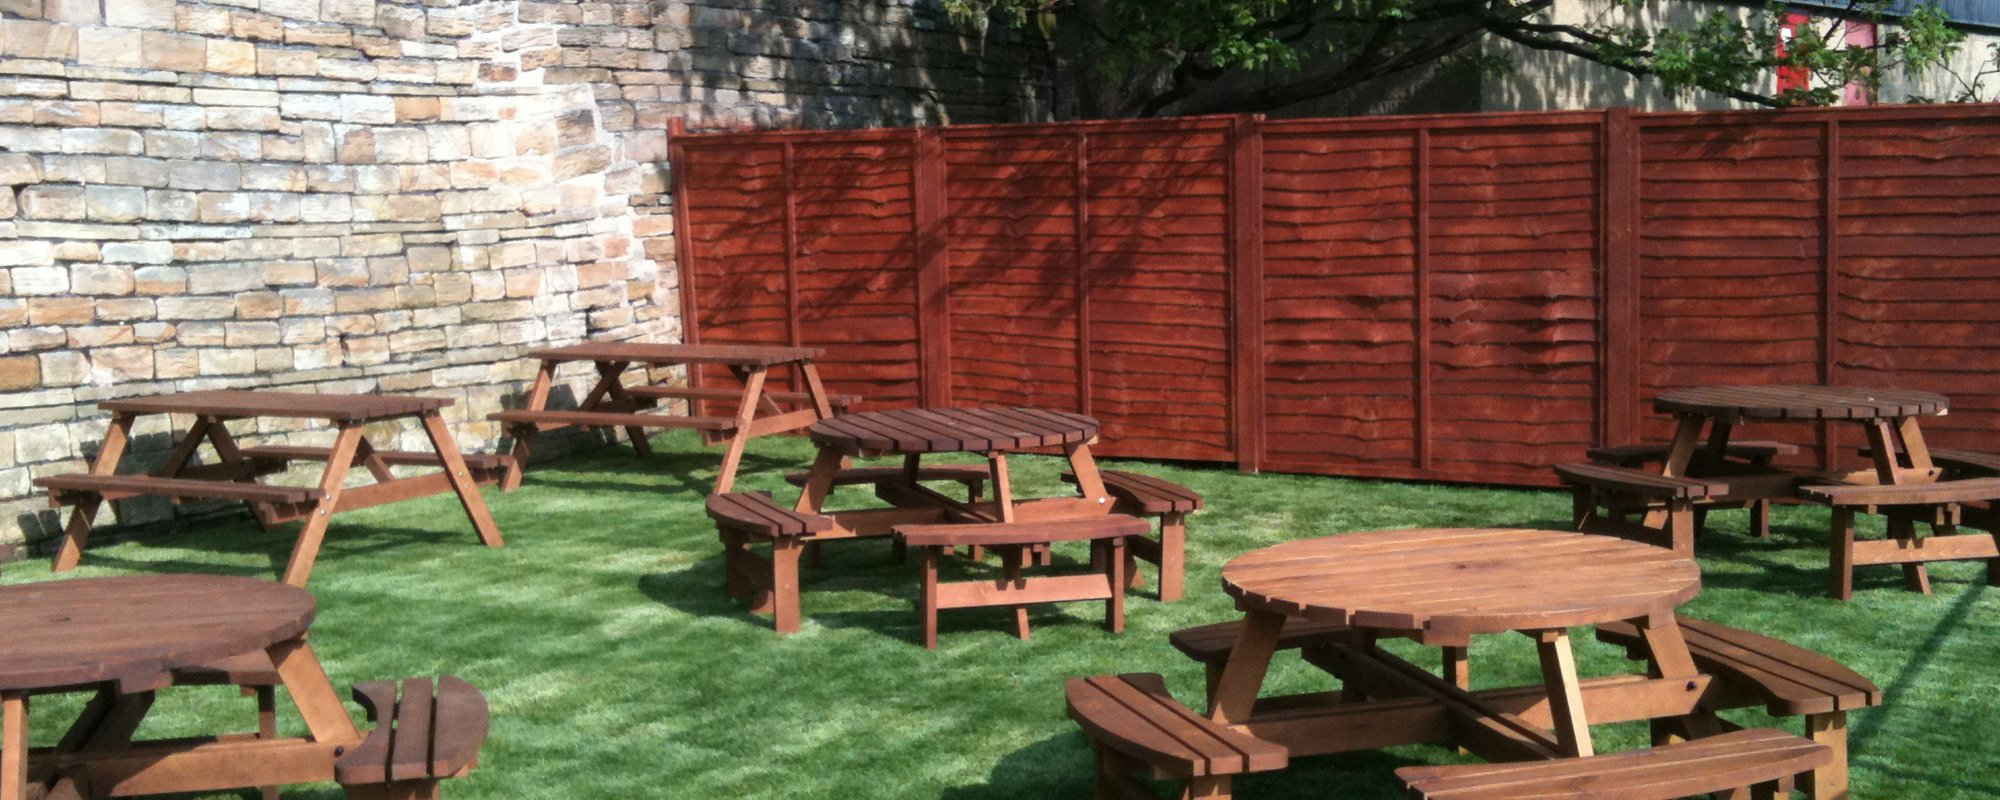 Exterior seating at The Pear Tree Inn